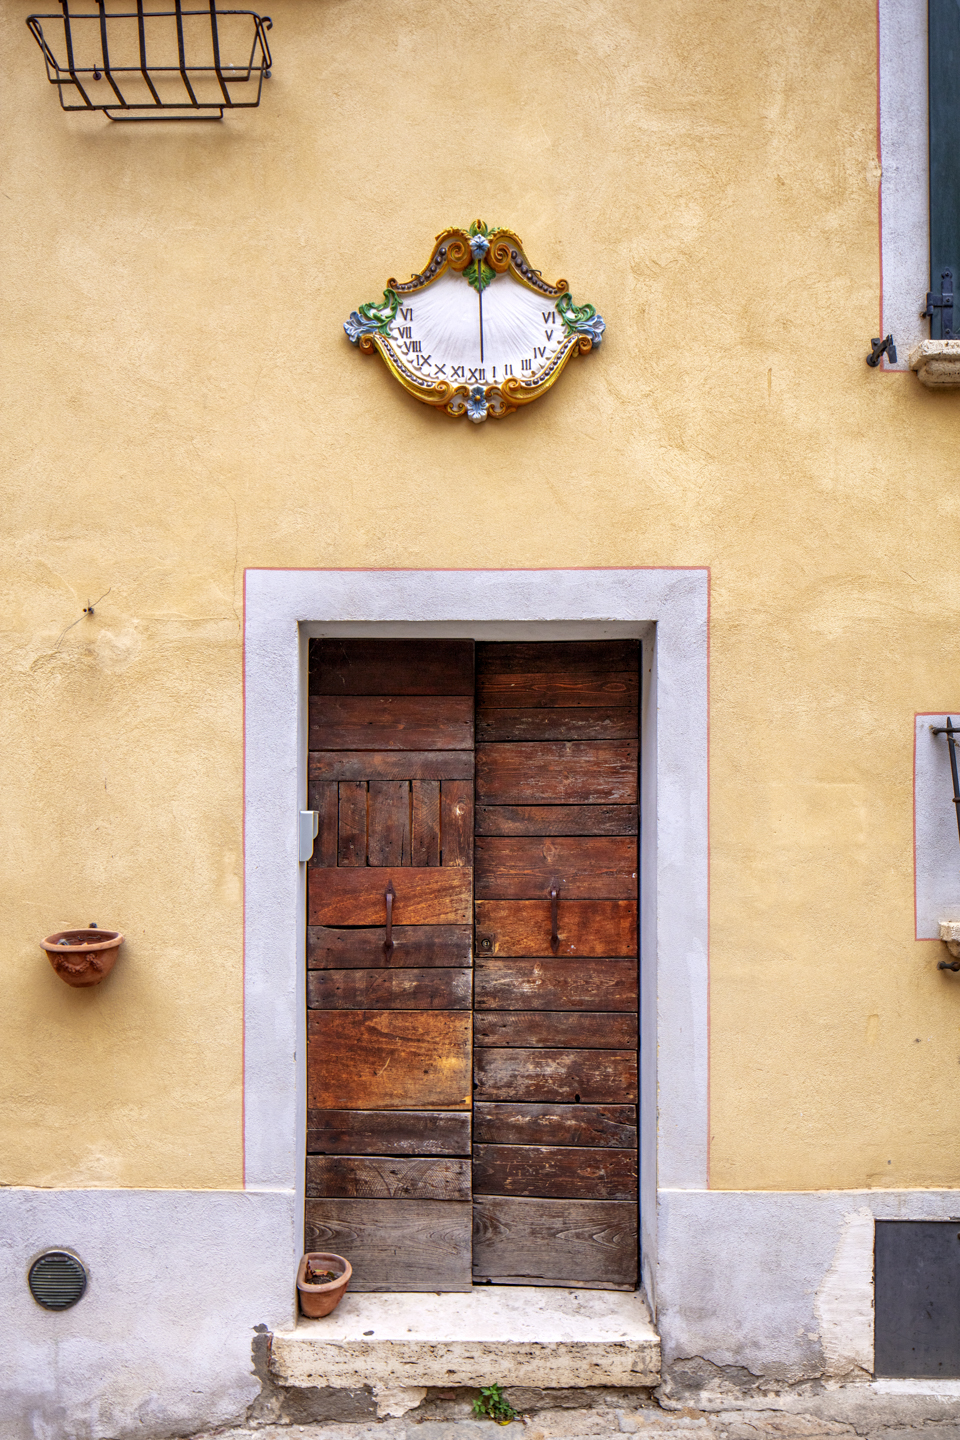 Color, Photograph, Tuscany, Door with Clock, Montepulciano, Italy, August 2, 2018